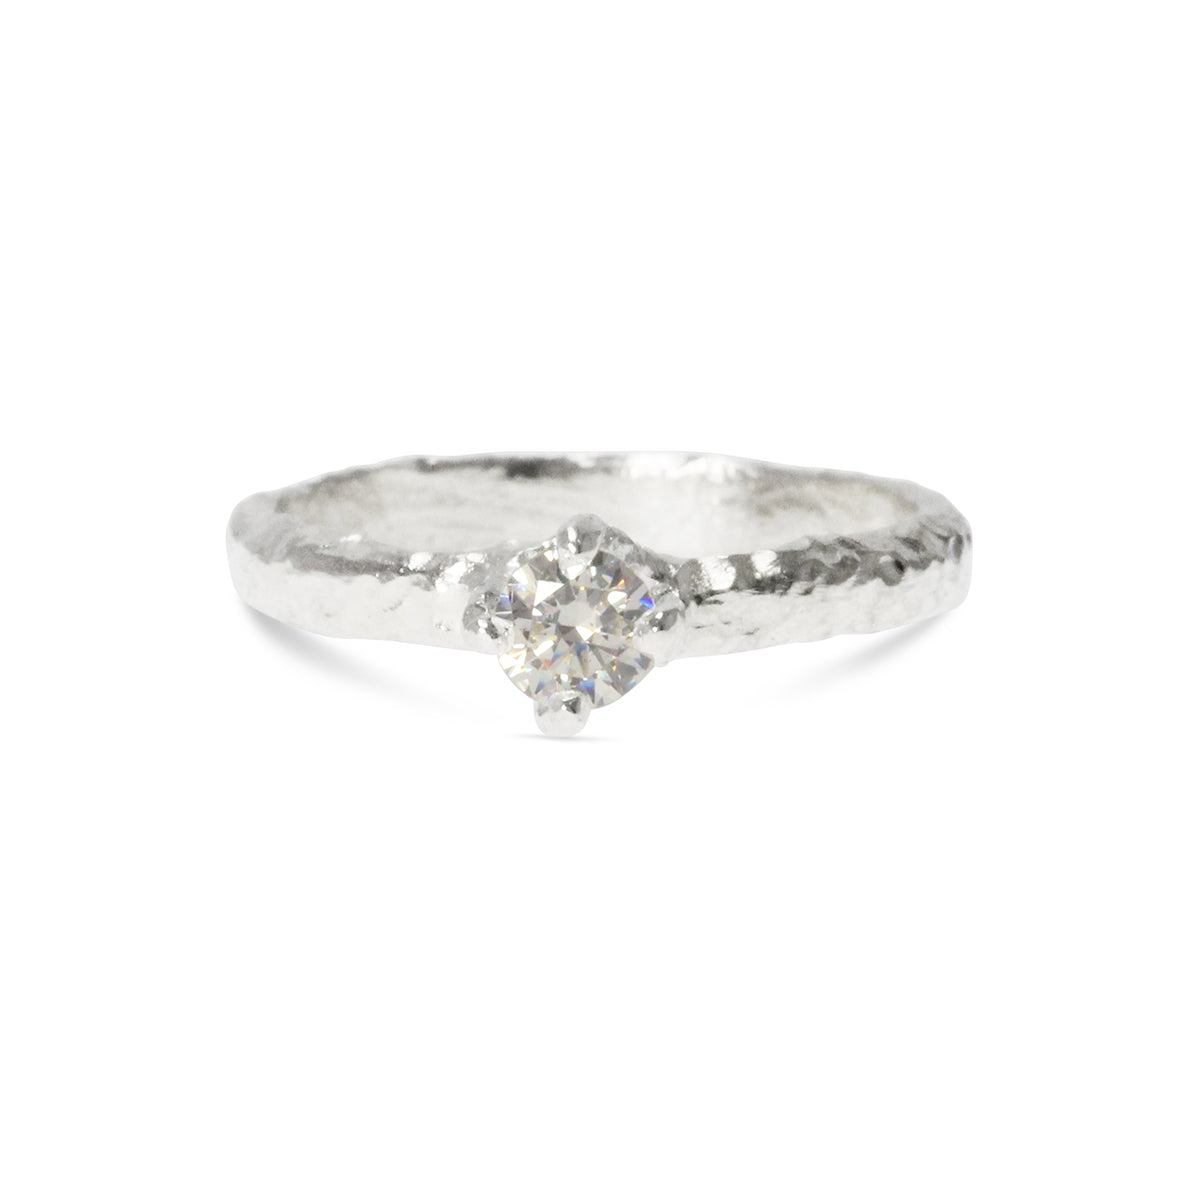 Handmade ring in sterling silver set with a white cubic zirconia. - Paul Magen